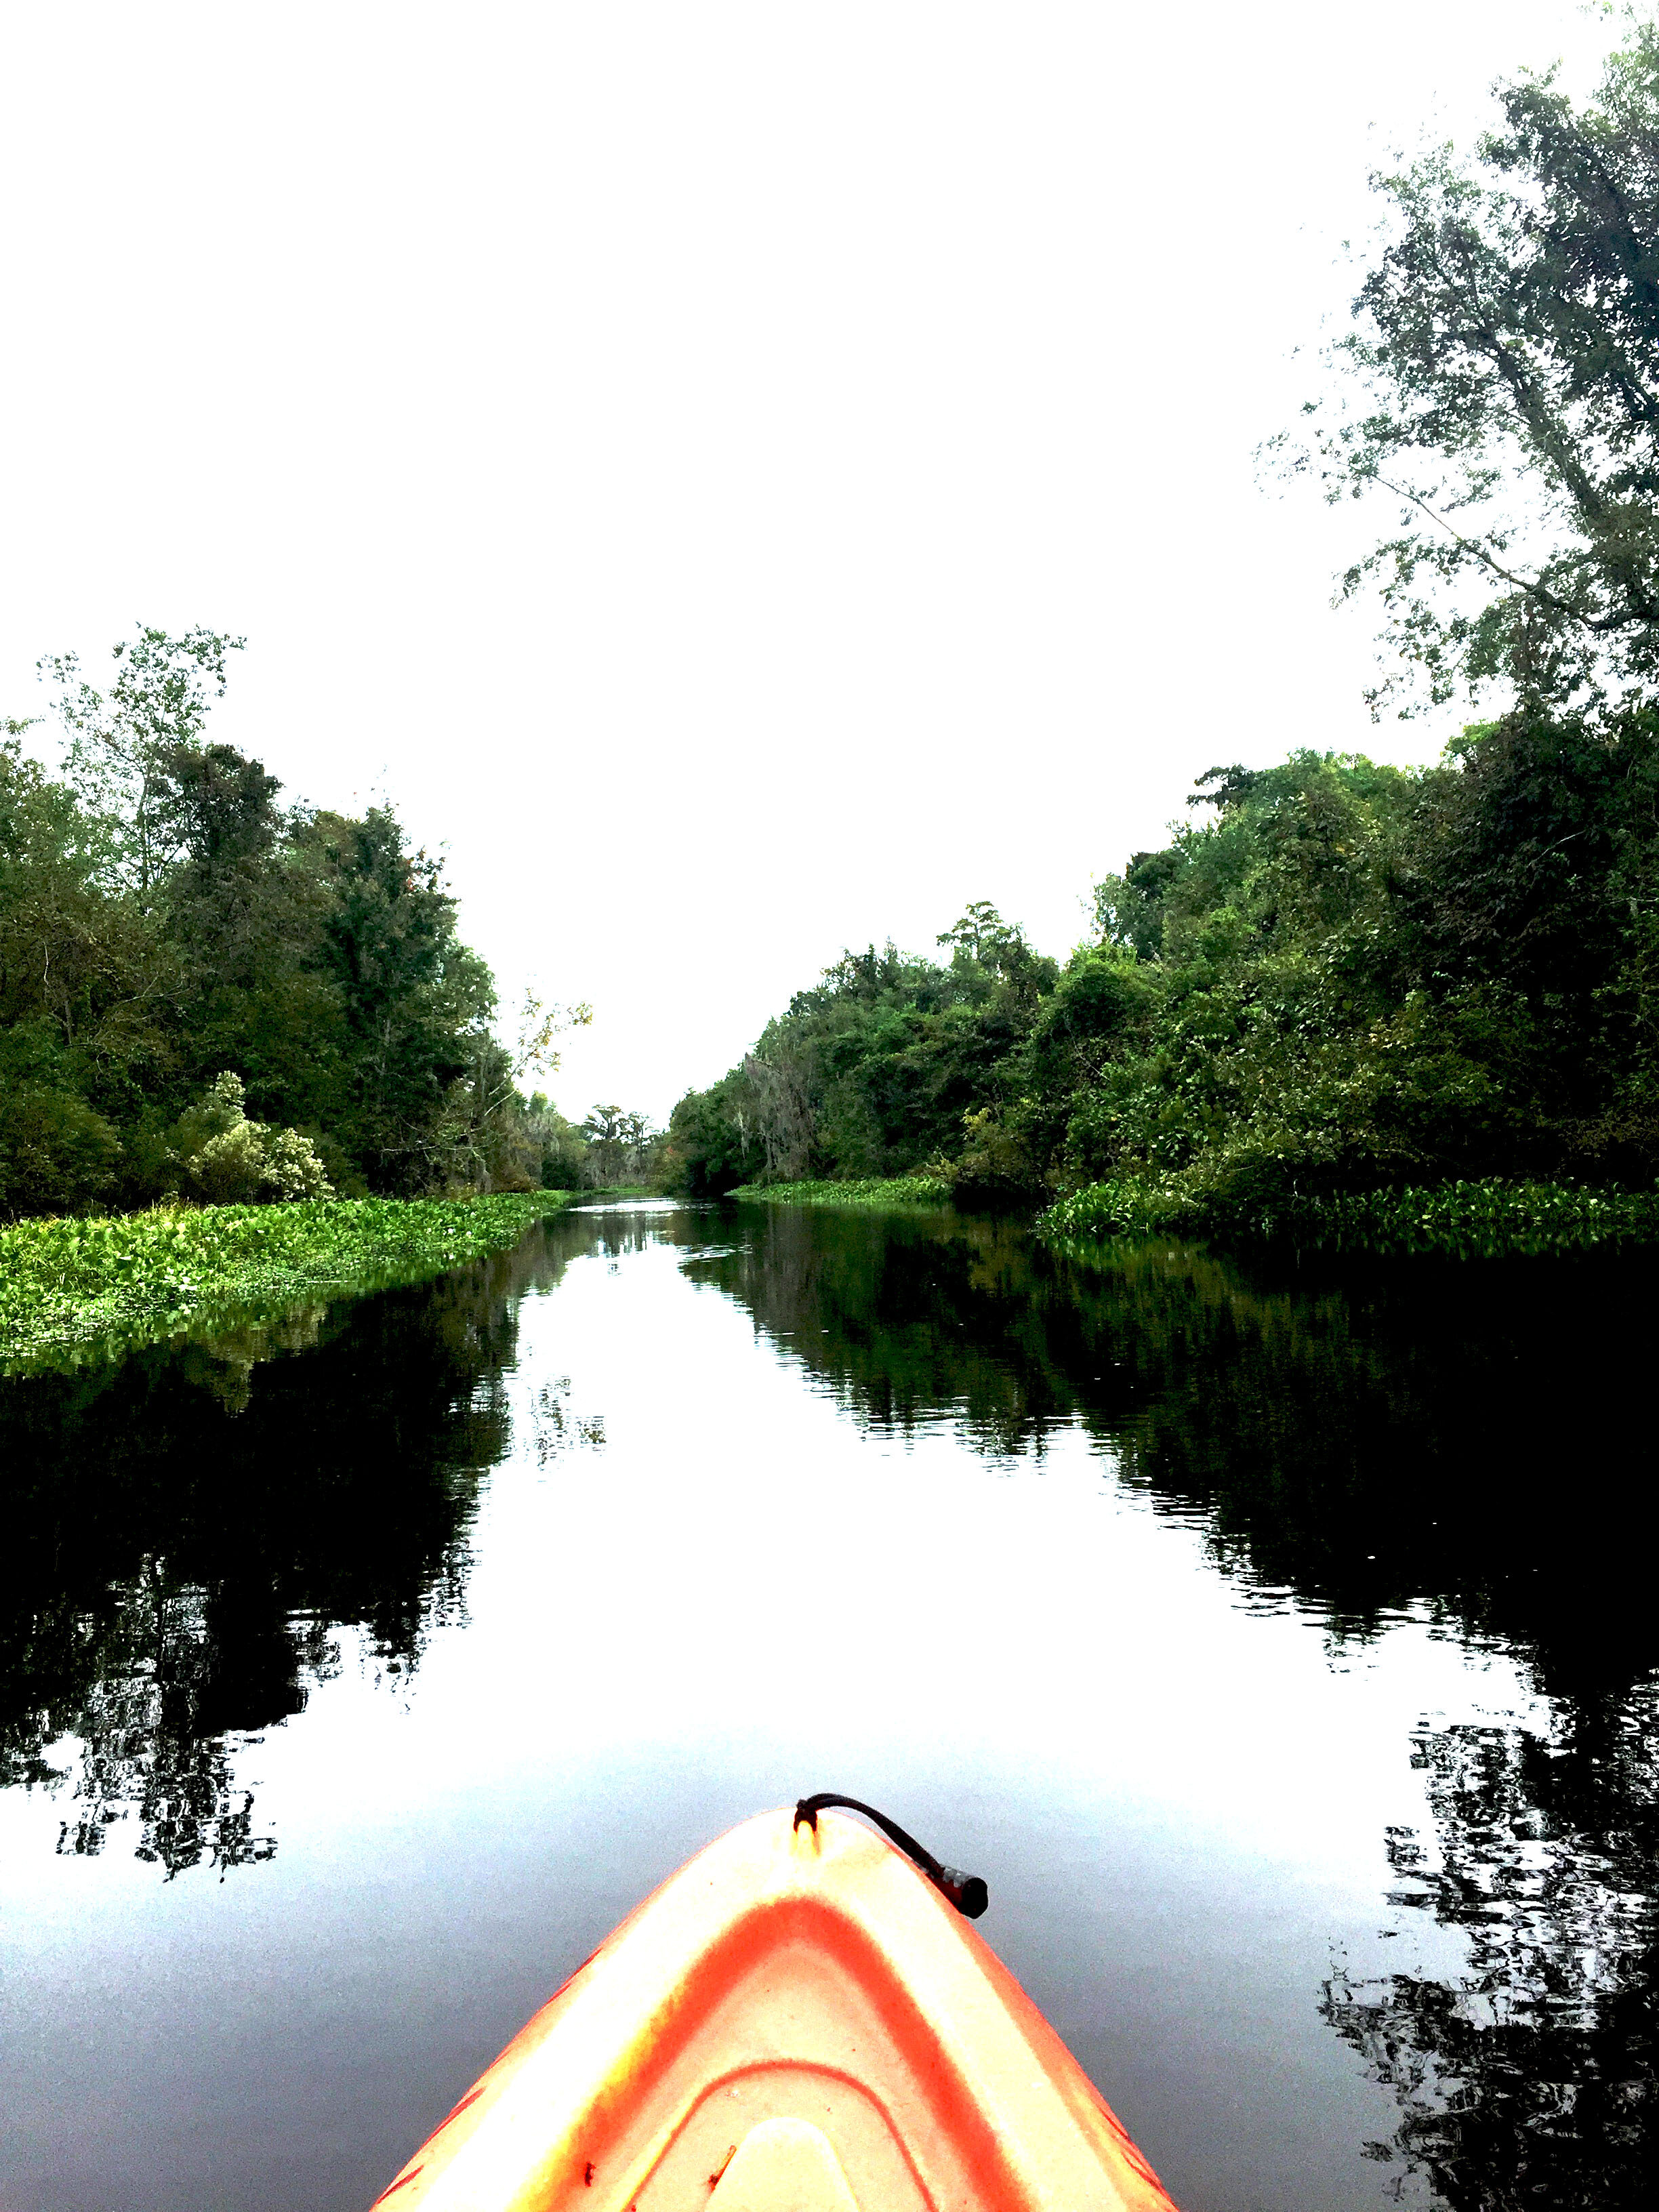 4 Days in New Orleans | NOLA Kayaking Tour | Laurel and Iron